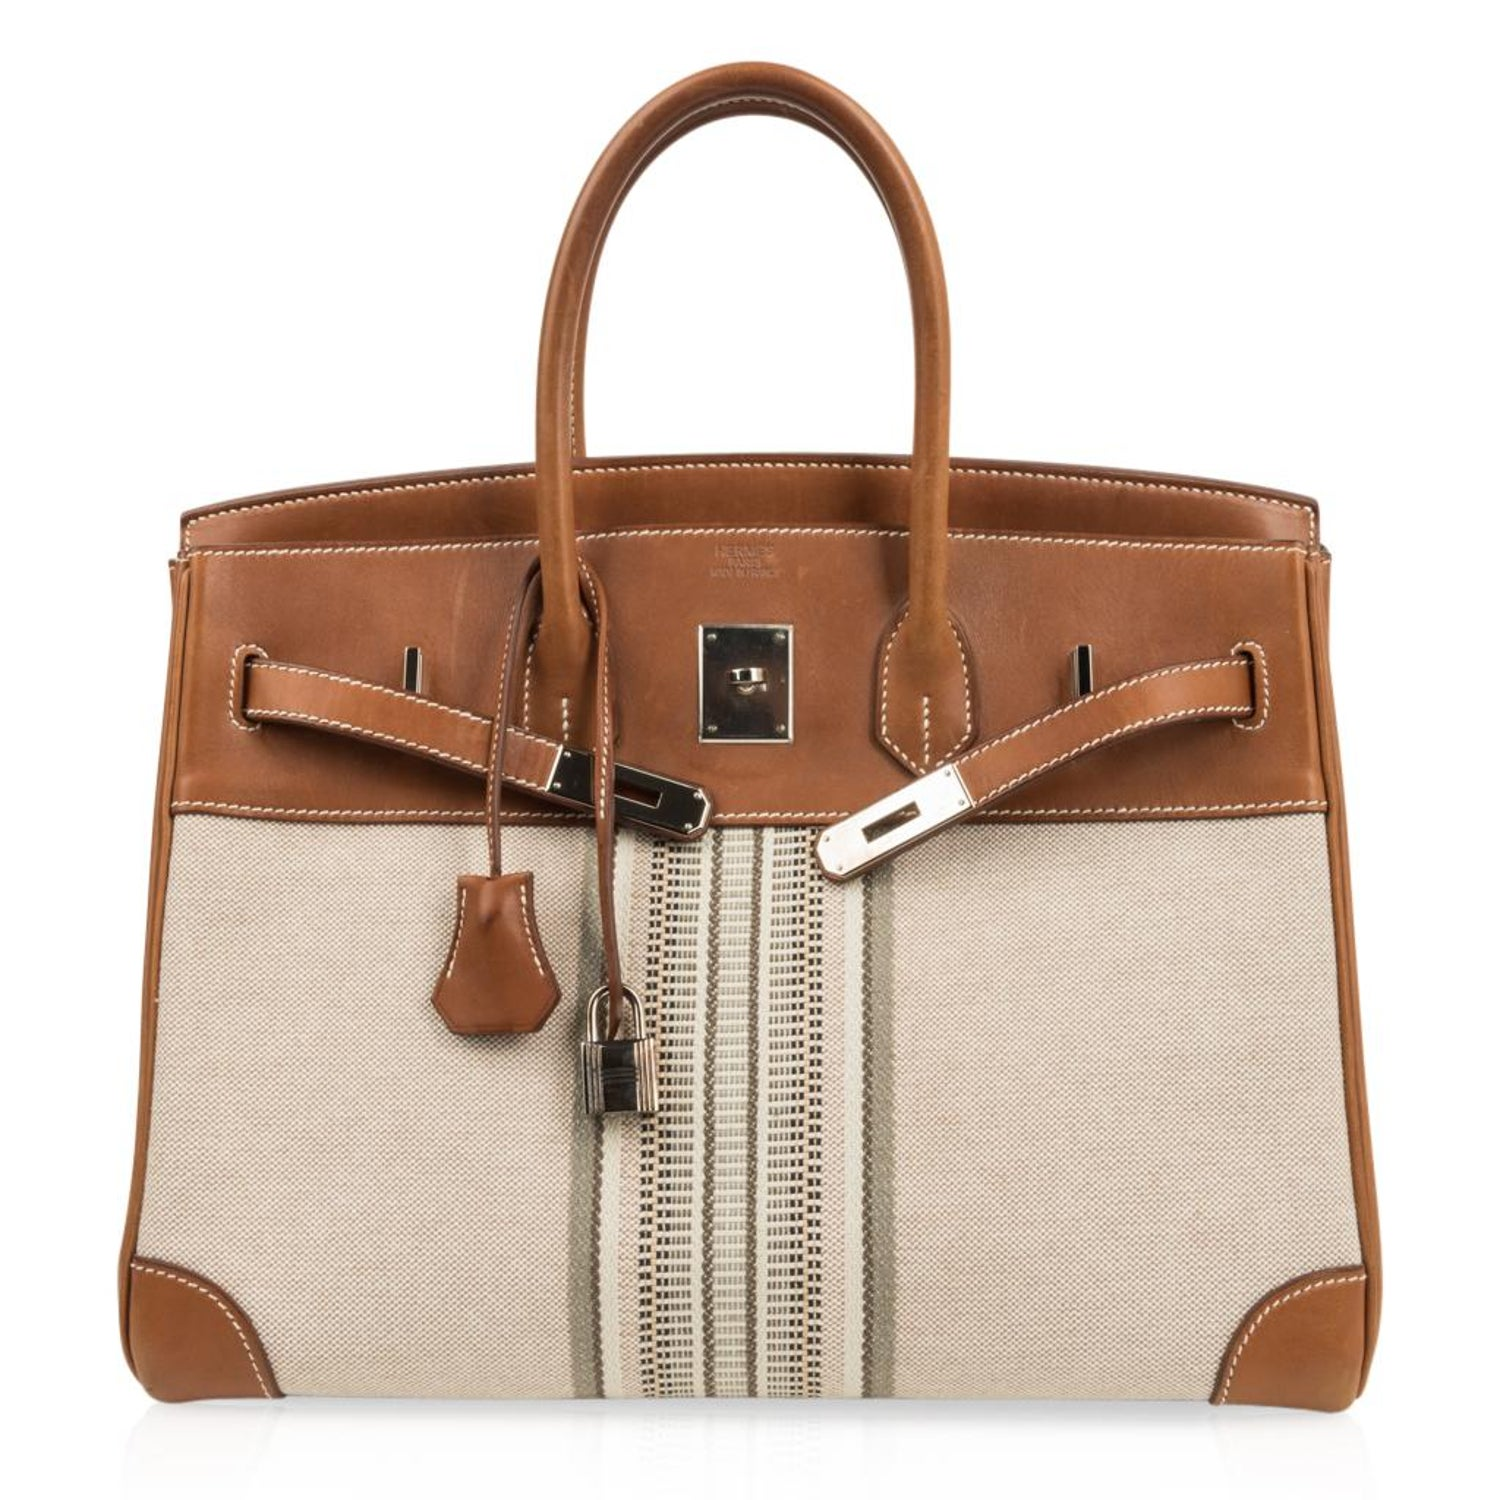 Hermes Birkin 35 Bag Rare H Ganges Toile Barenia Limited Edition Palladium  For Sale at 1stdibs 09d329e3129cf